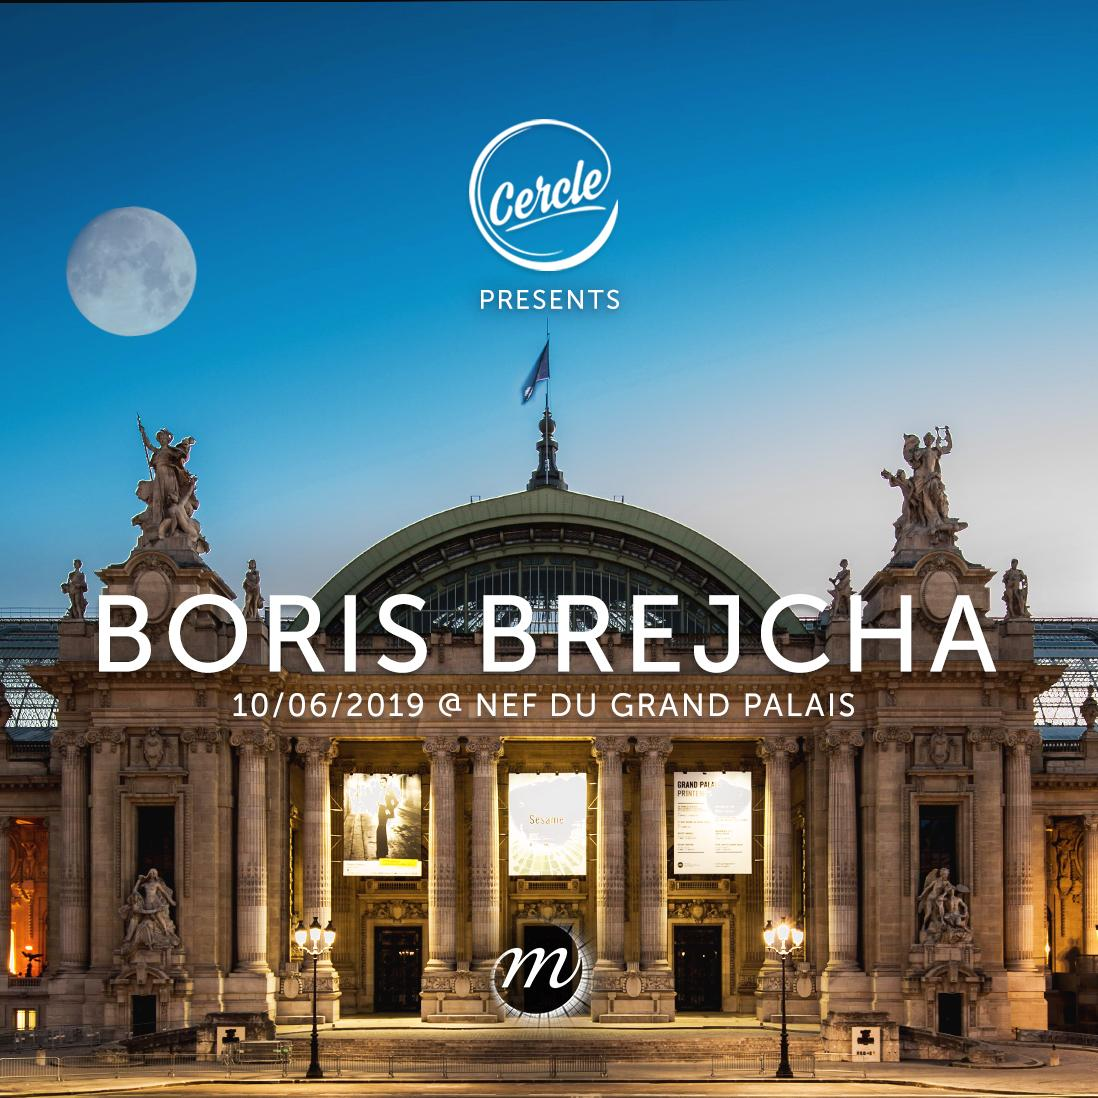 download → Boris Brejcha - Live @ Grand Palais (Cercle, France) - 10-Jun-2019